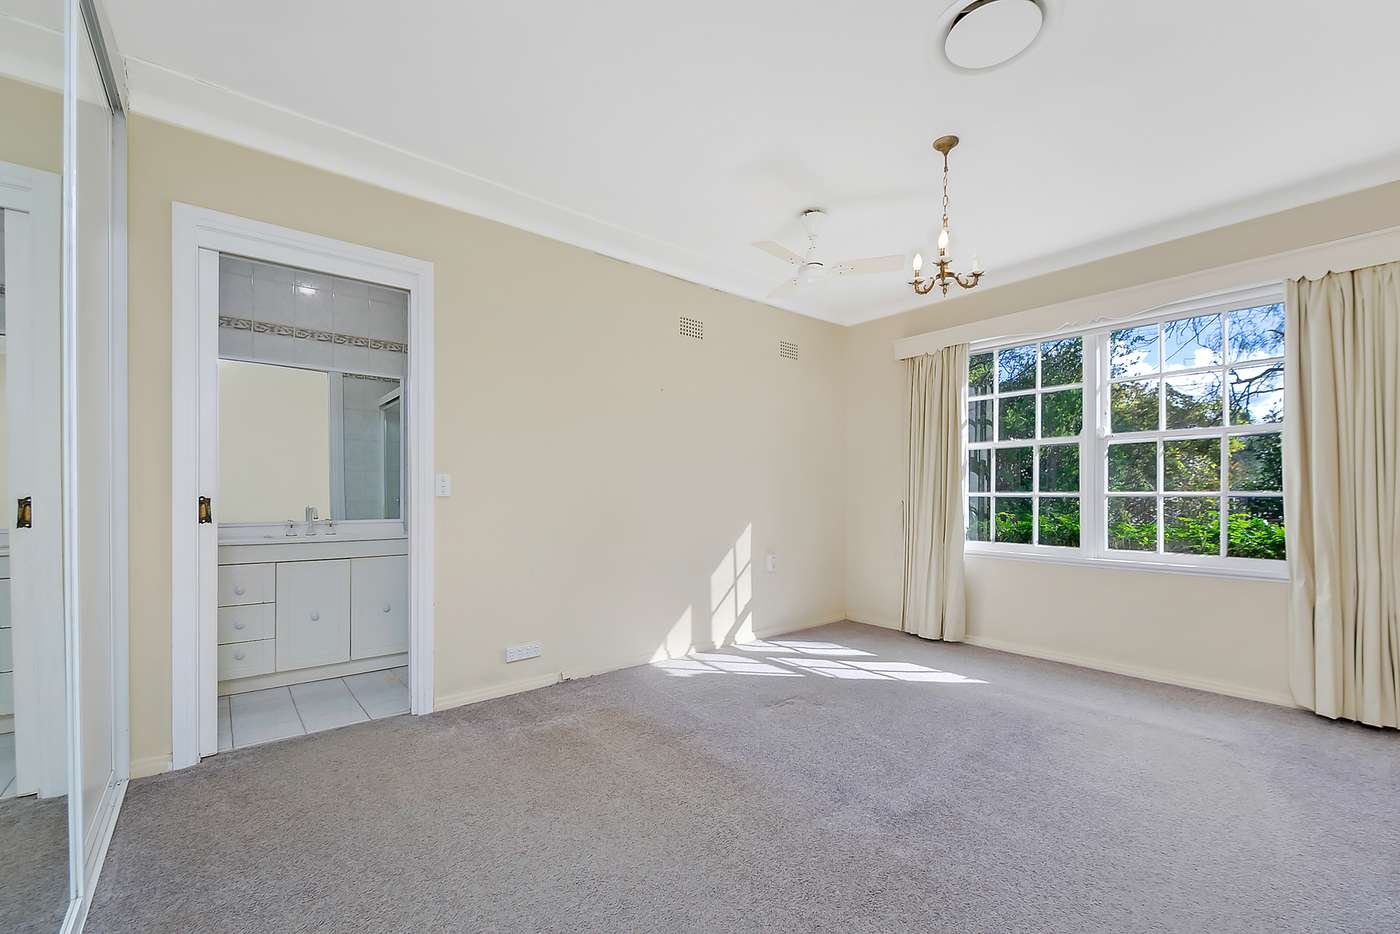 Sixth view of Homely house listing, 101 Warrimoo Avenue, St Ives NSW 2075